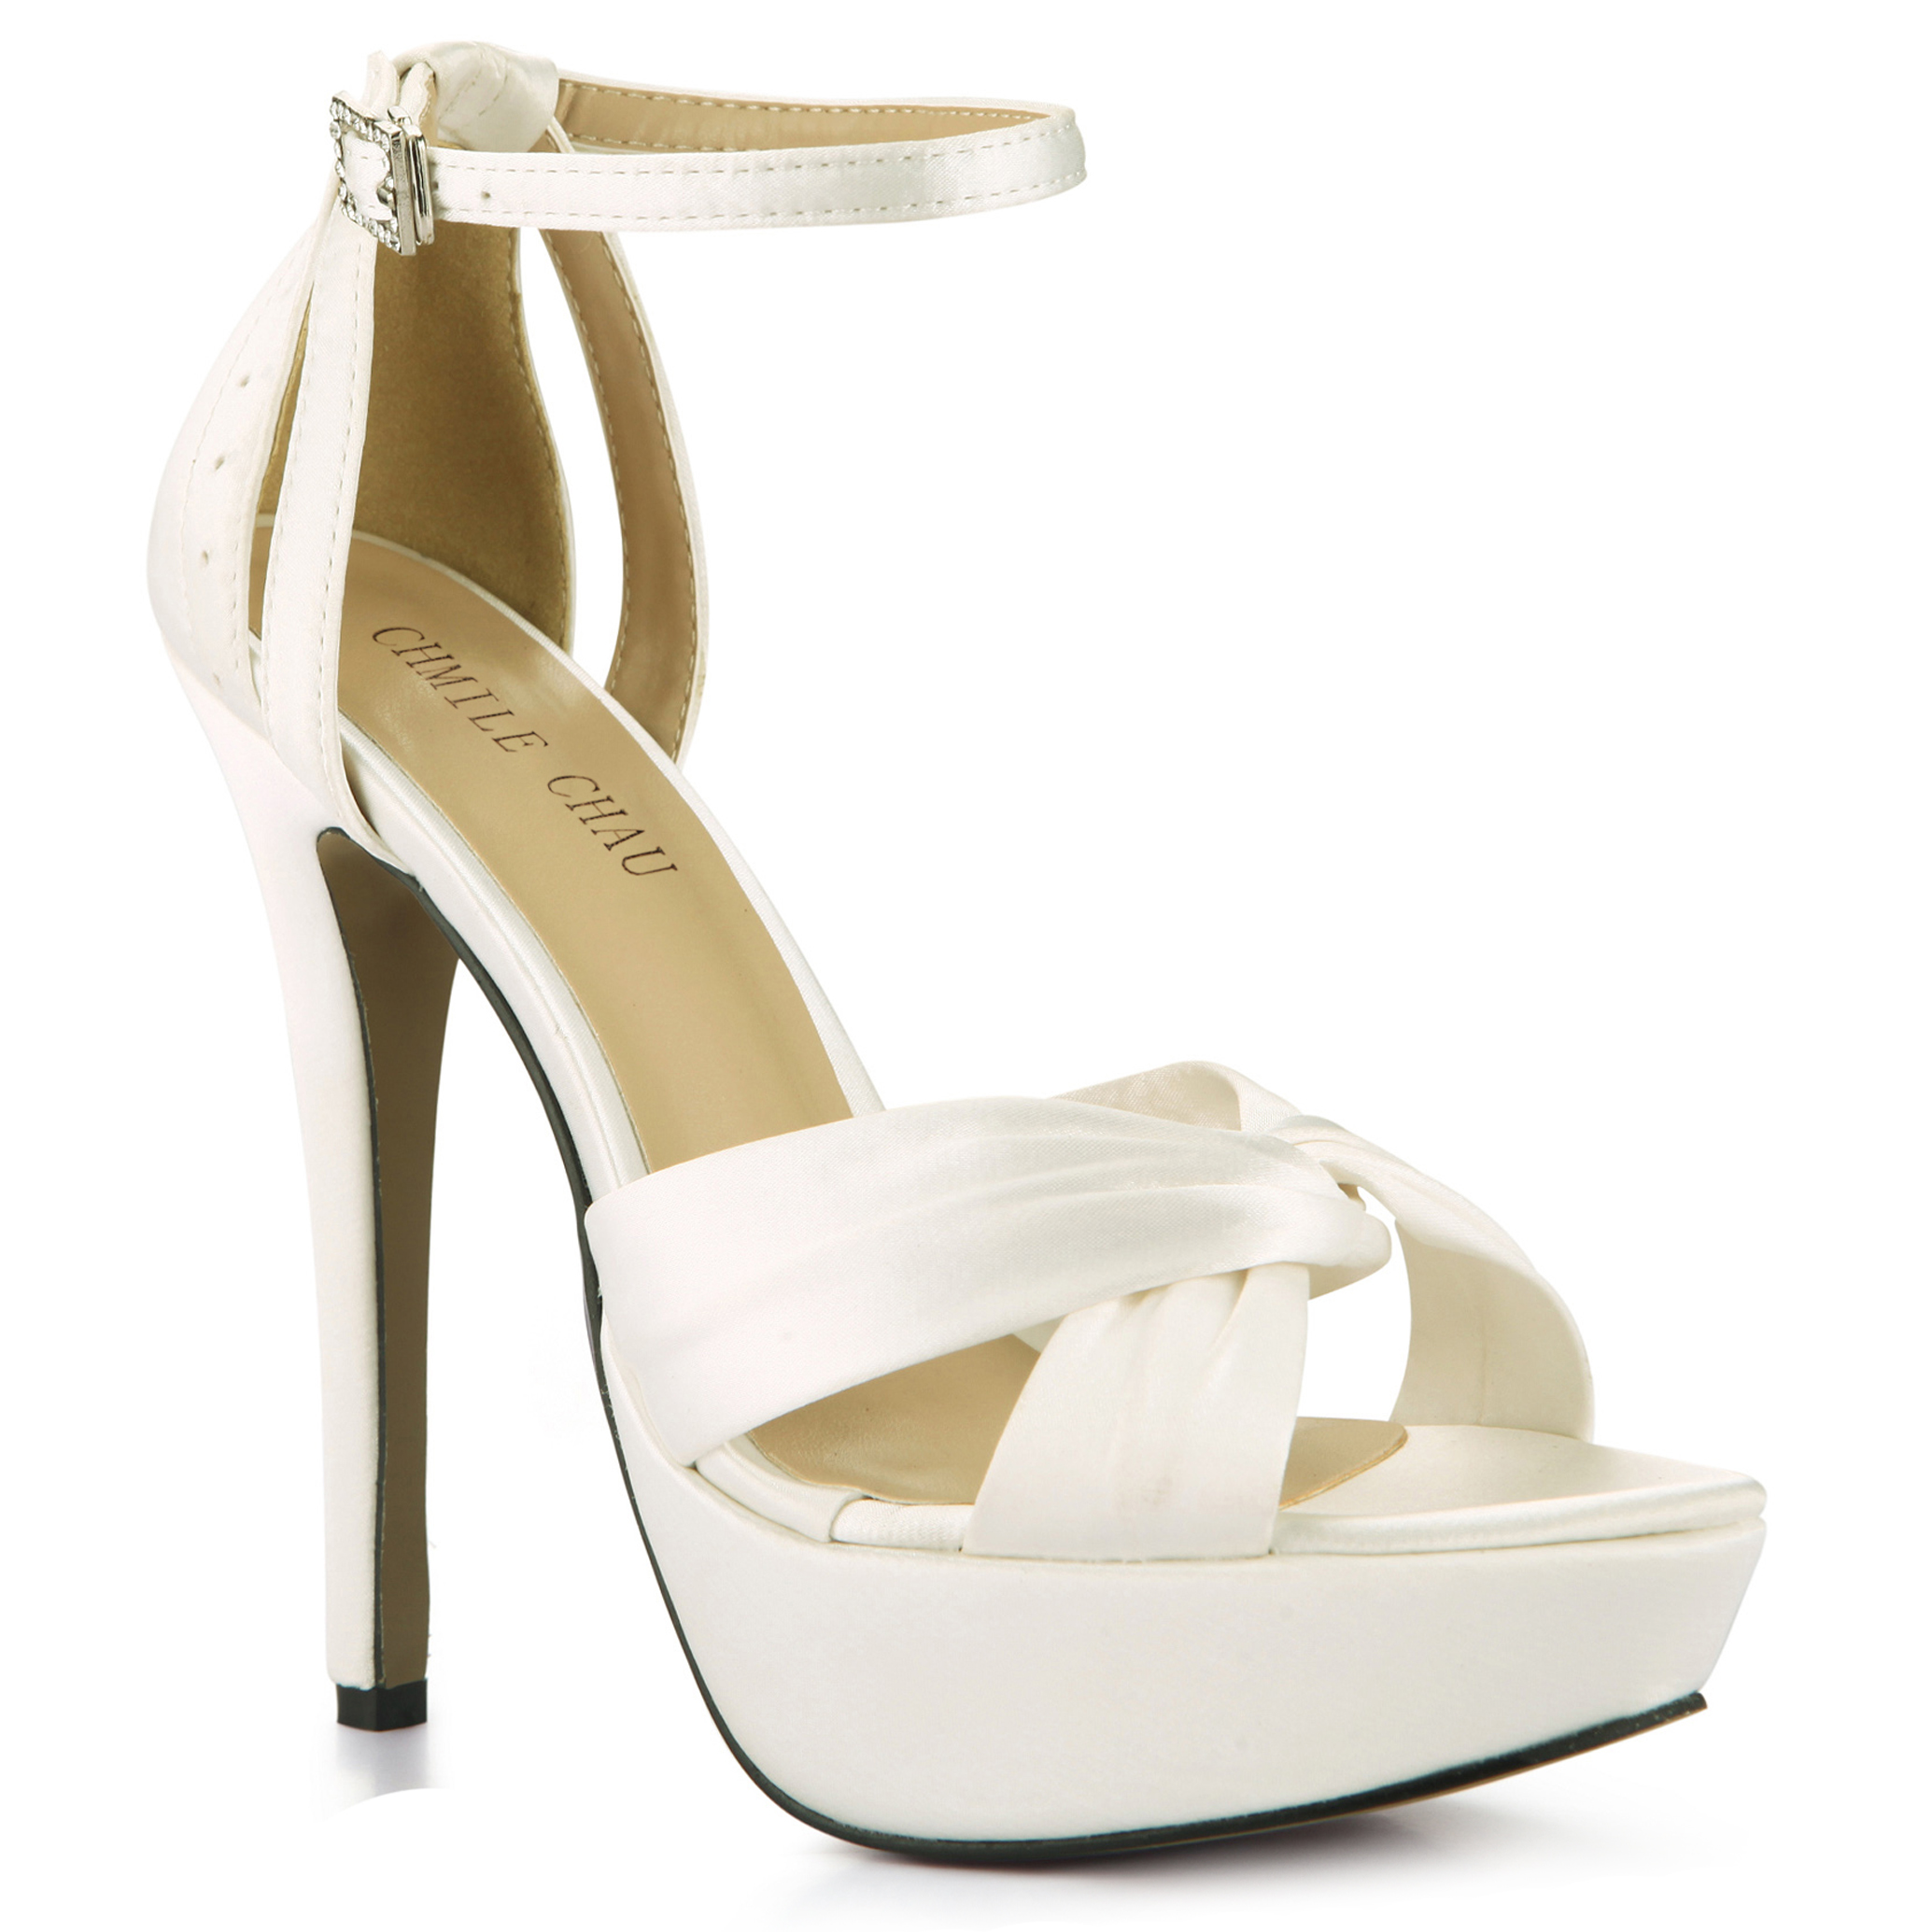 CHMILE CHAU Ivory Satin Elegant Wedding Party Women 39 s Shoes Open Toe Stiletto Heel Dating Platform Sandals with Buckle 3463SL b1 in High Heels from Shoes